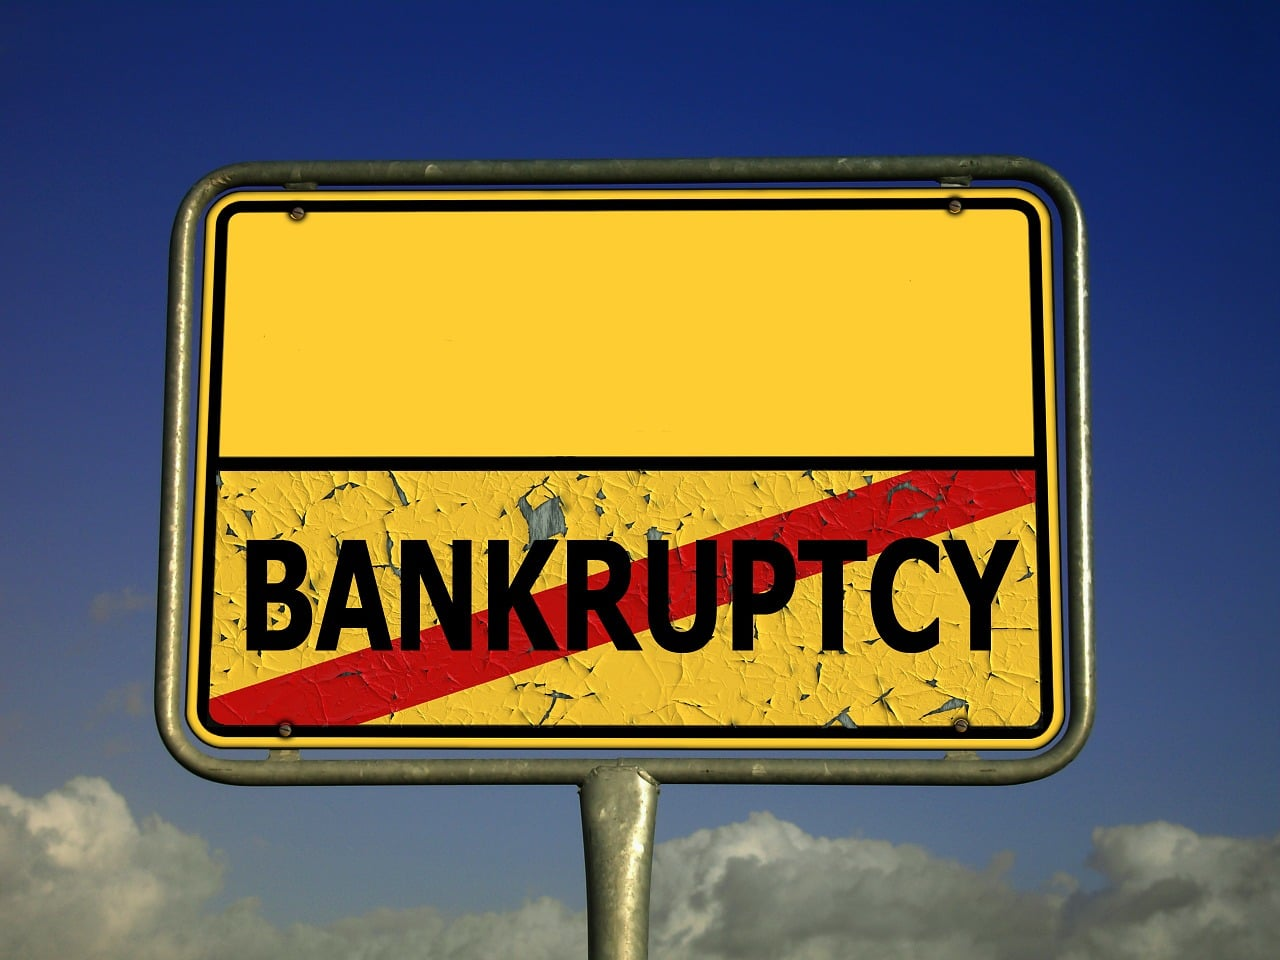 Top 10 Largest Corporate Bankruptcies In the US History